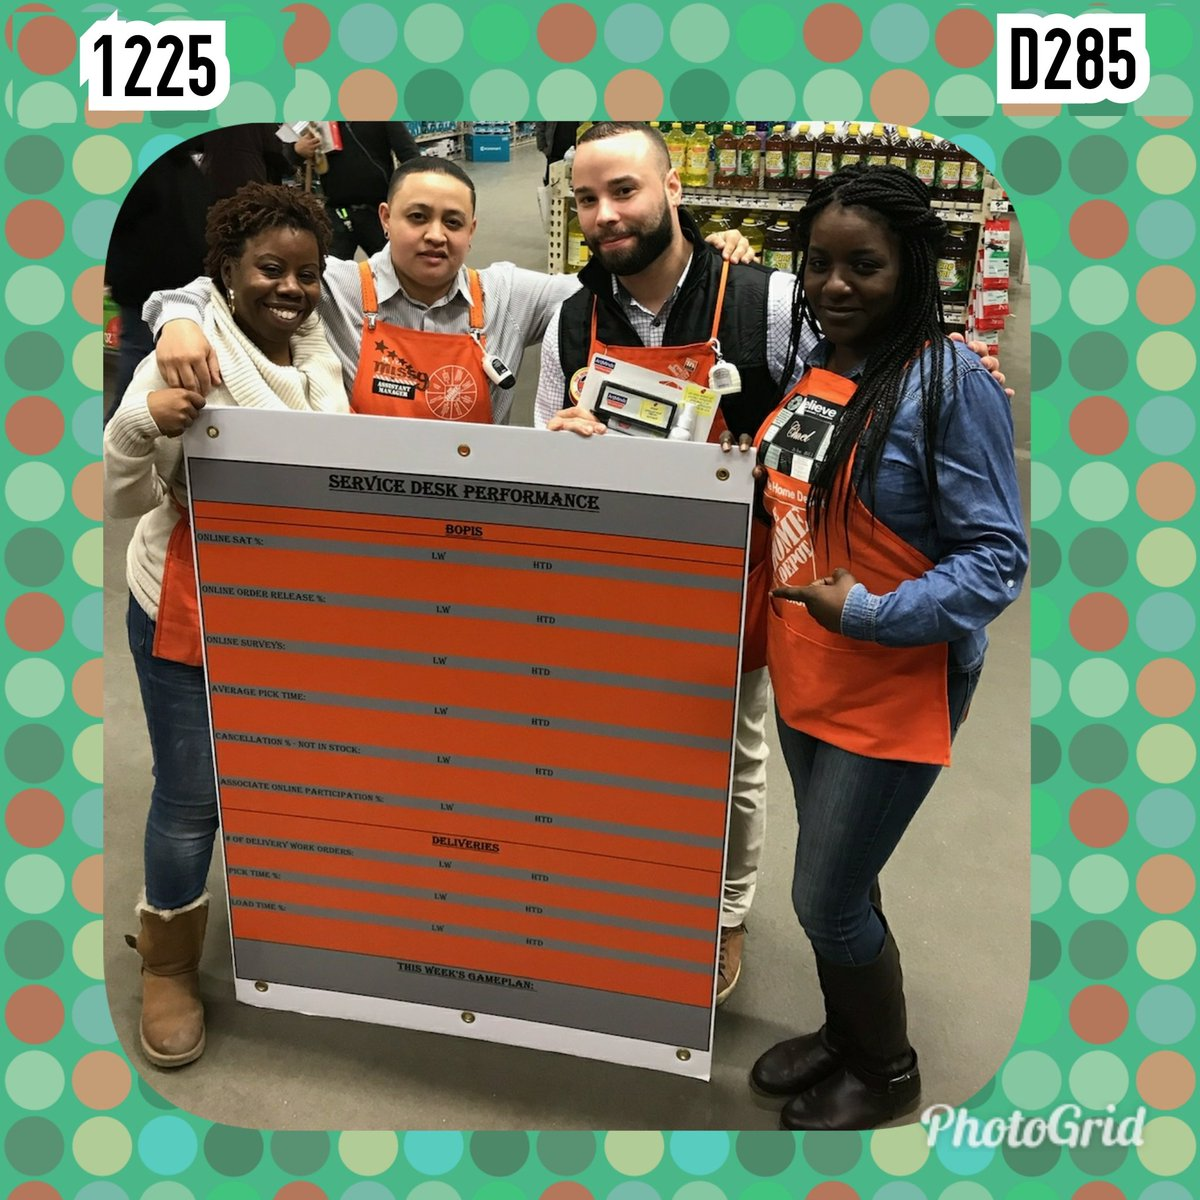 Always Striving To Improve The Online Experience At Home Depot Store 1225 Receiving Their Service Desk Performance Board BelloMobellopictwitter